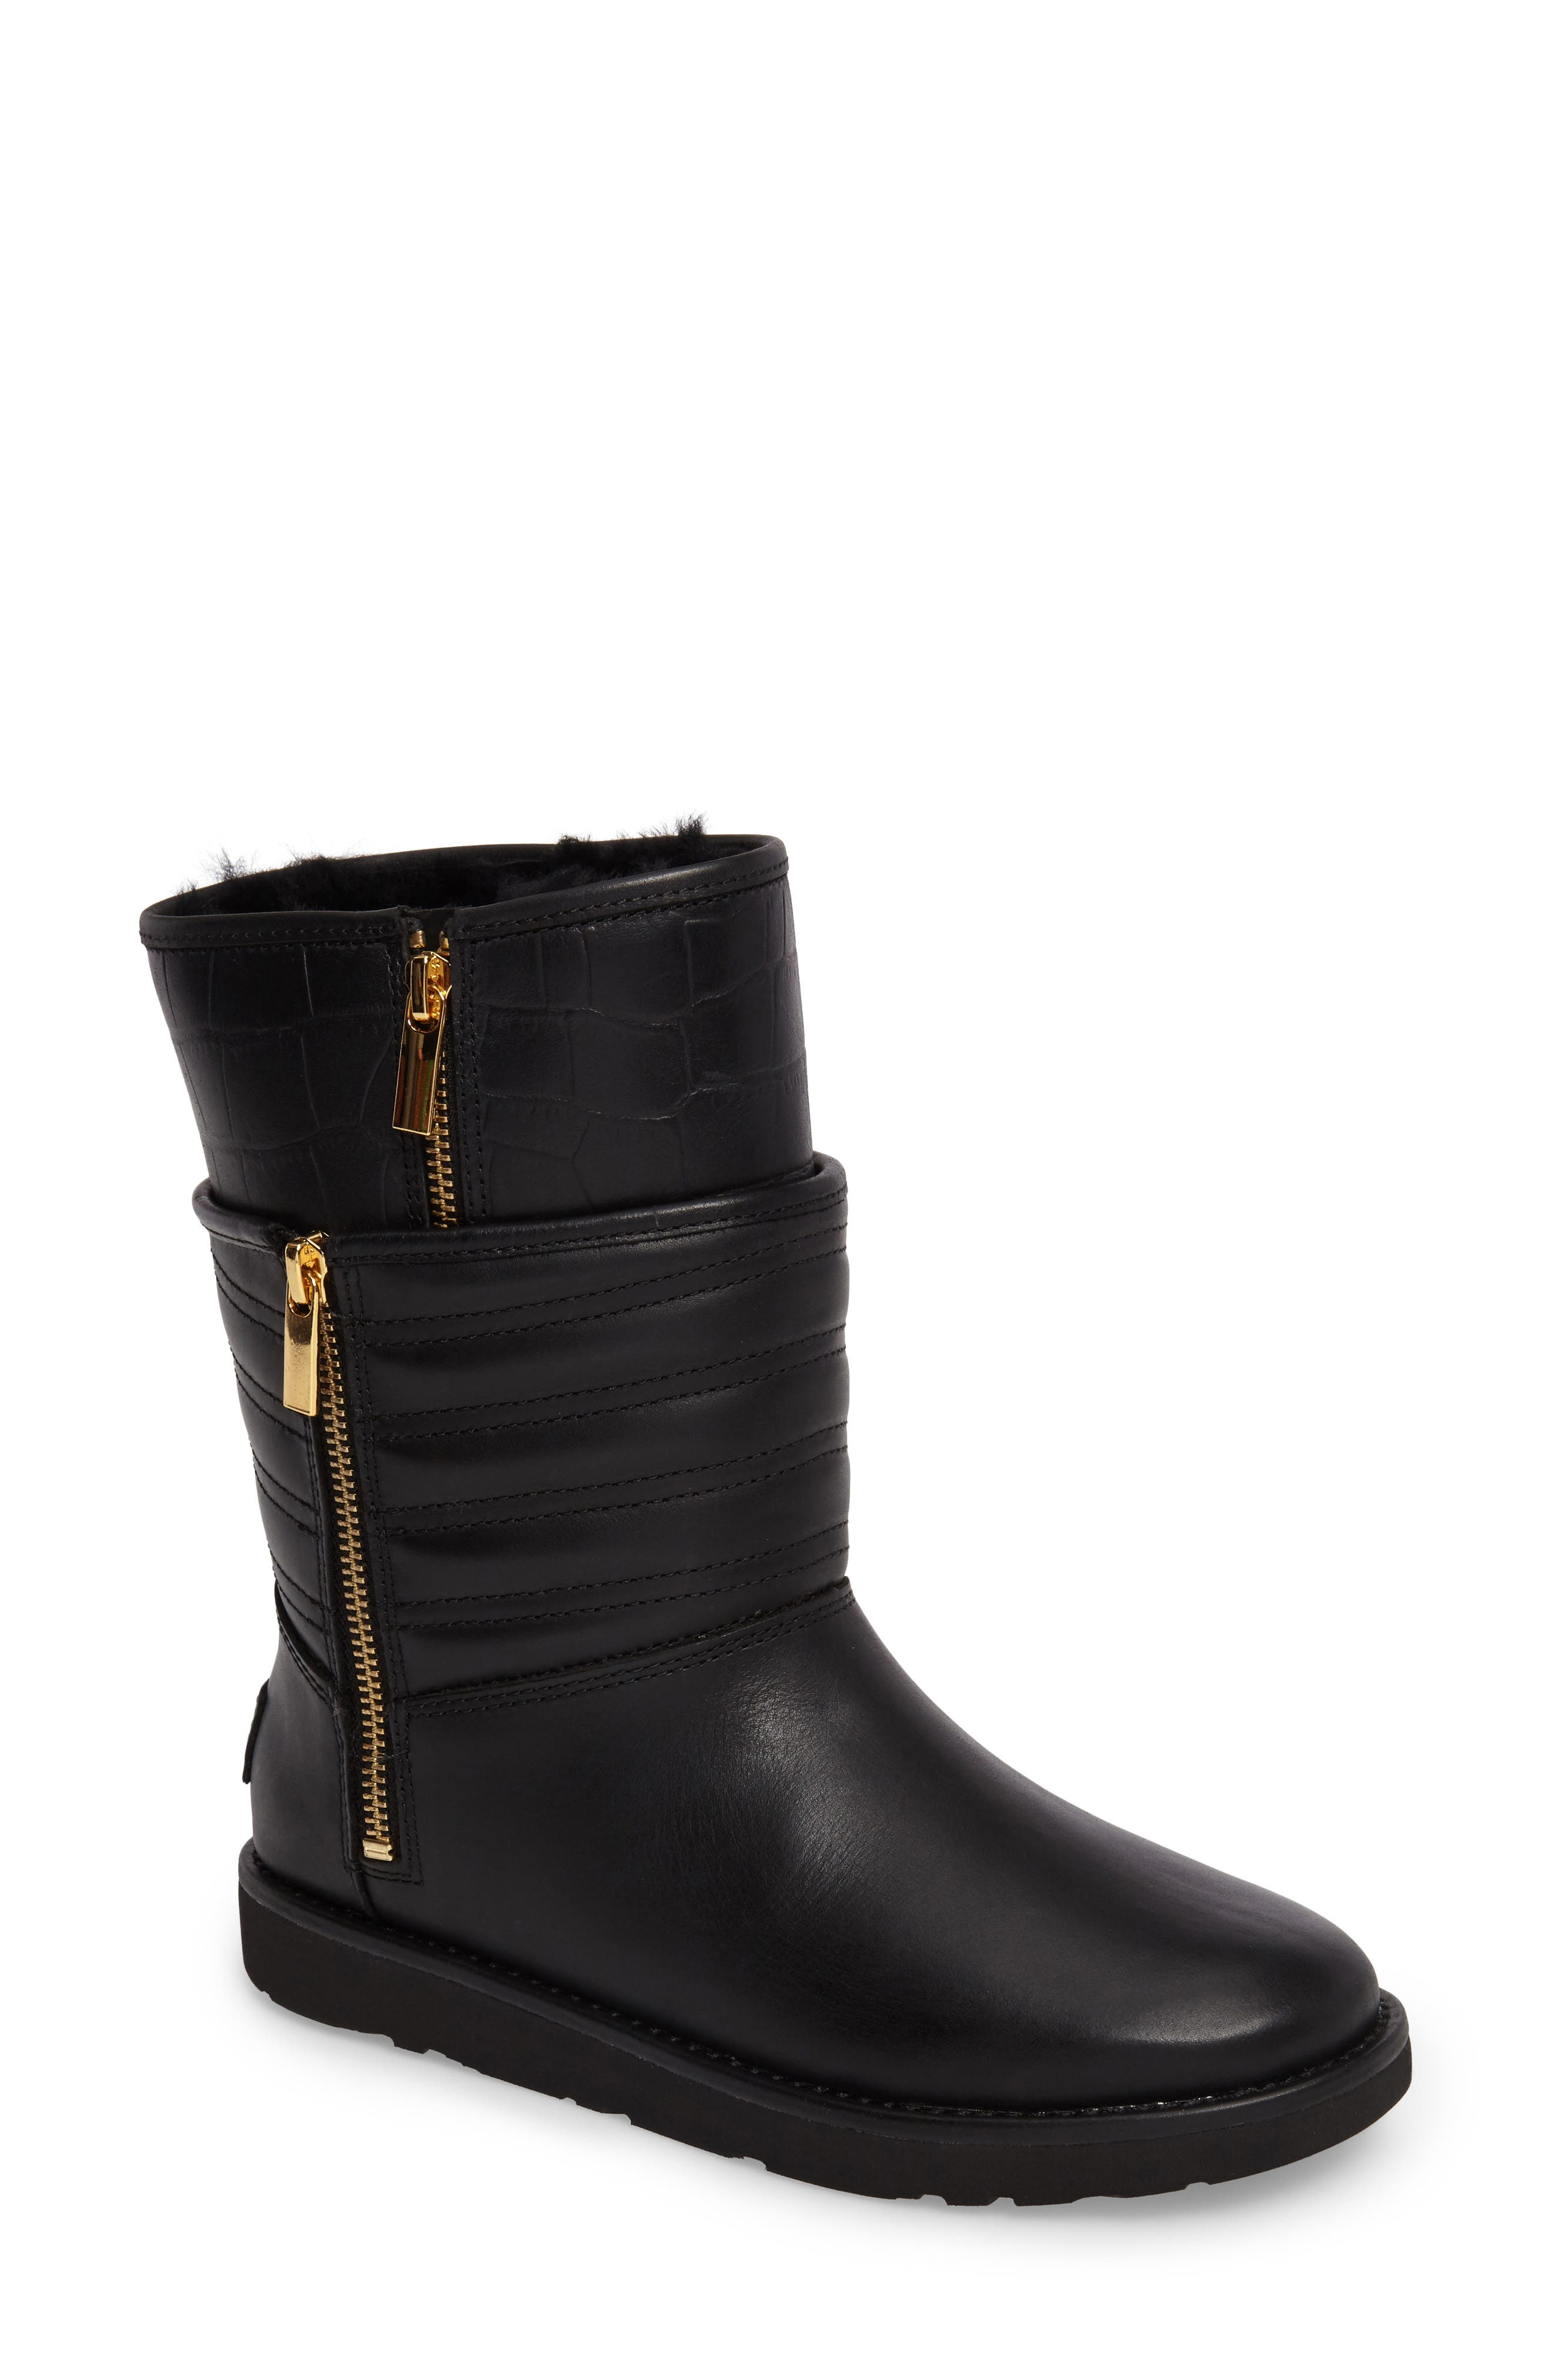 Aviva Genuine Shearling Lined Boot,                         Main,                         color, Black Leather